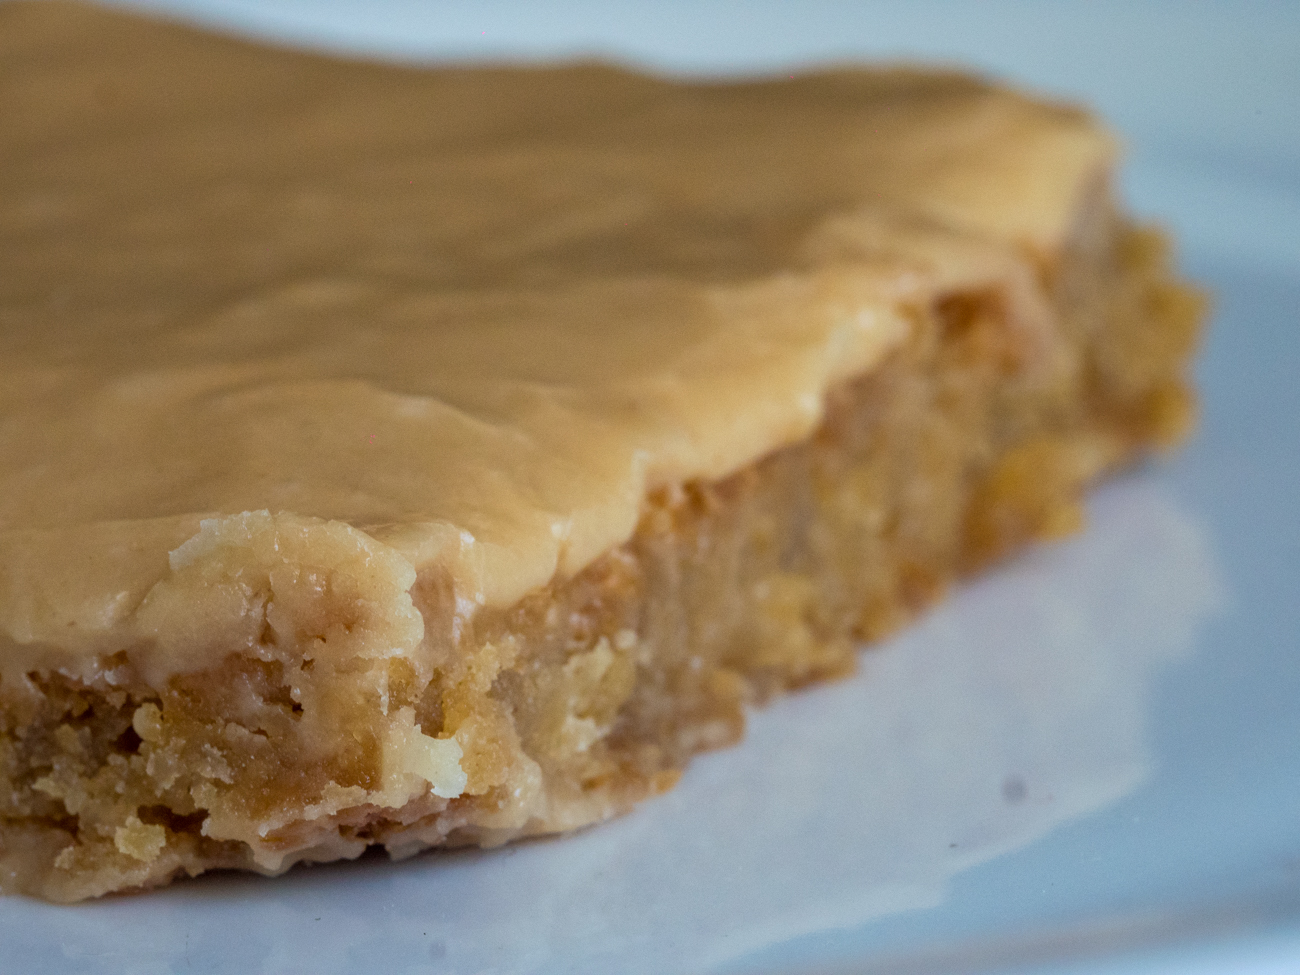 Peanut Butter Sheet Cookie horizontal 5